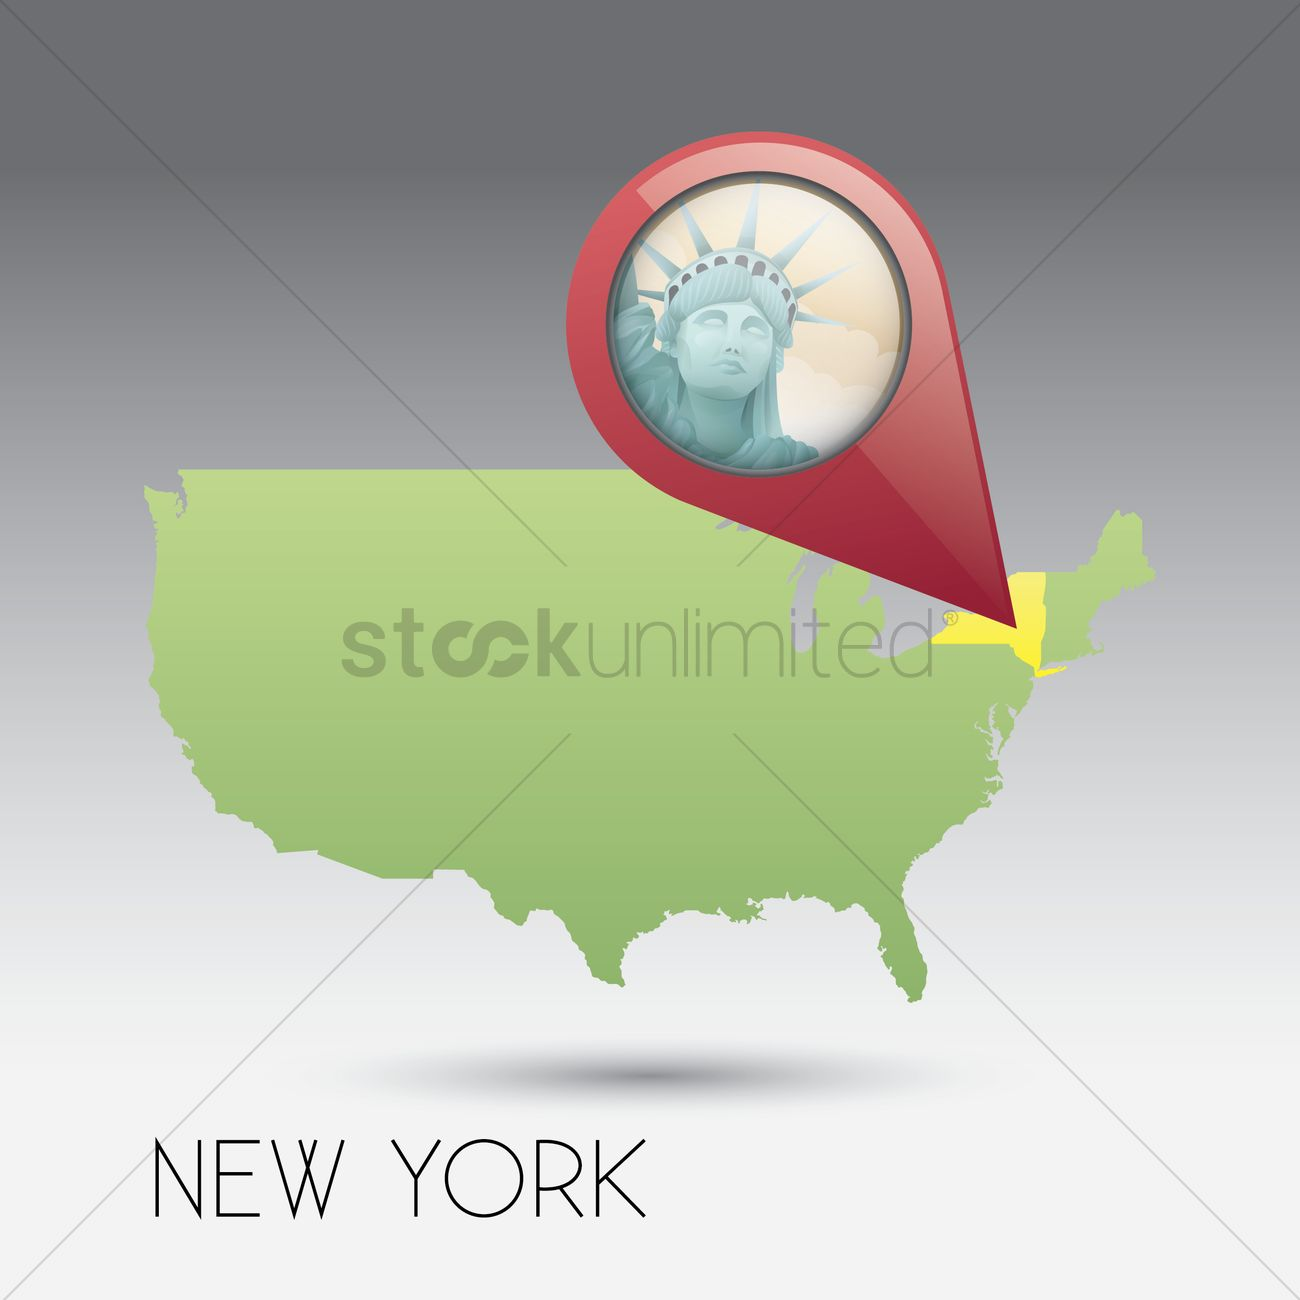 Usa Map With New York State Vector Image StockUnlimited - Usa map new york